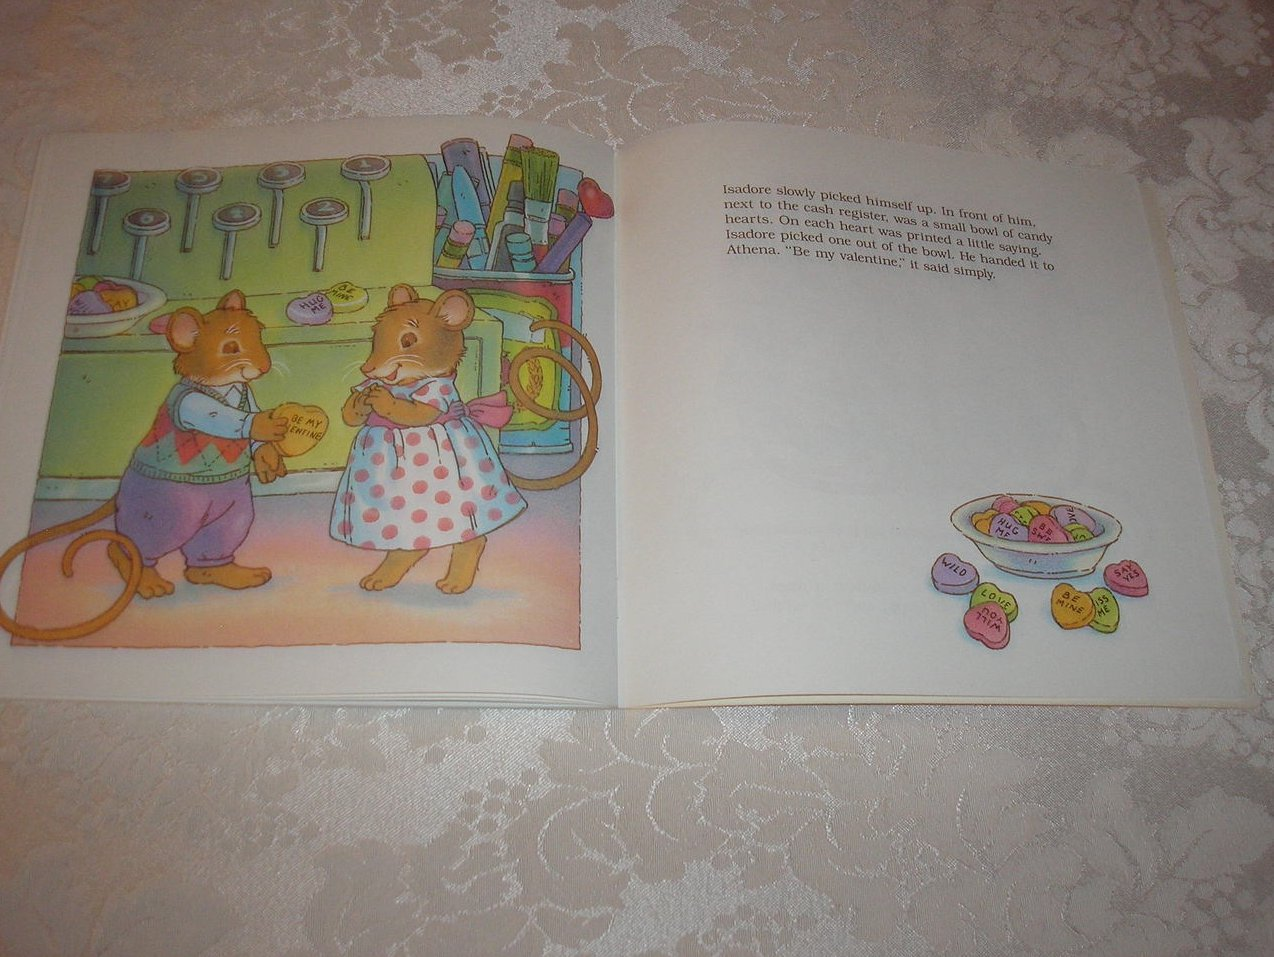 Image 4 of Be My Valentine M.J. Carr Good Softcover